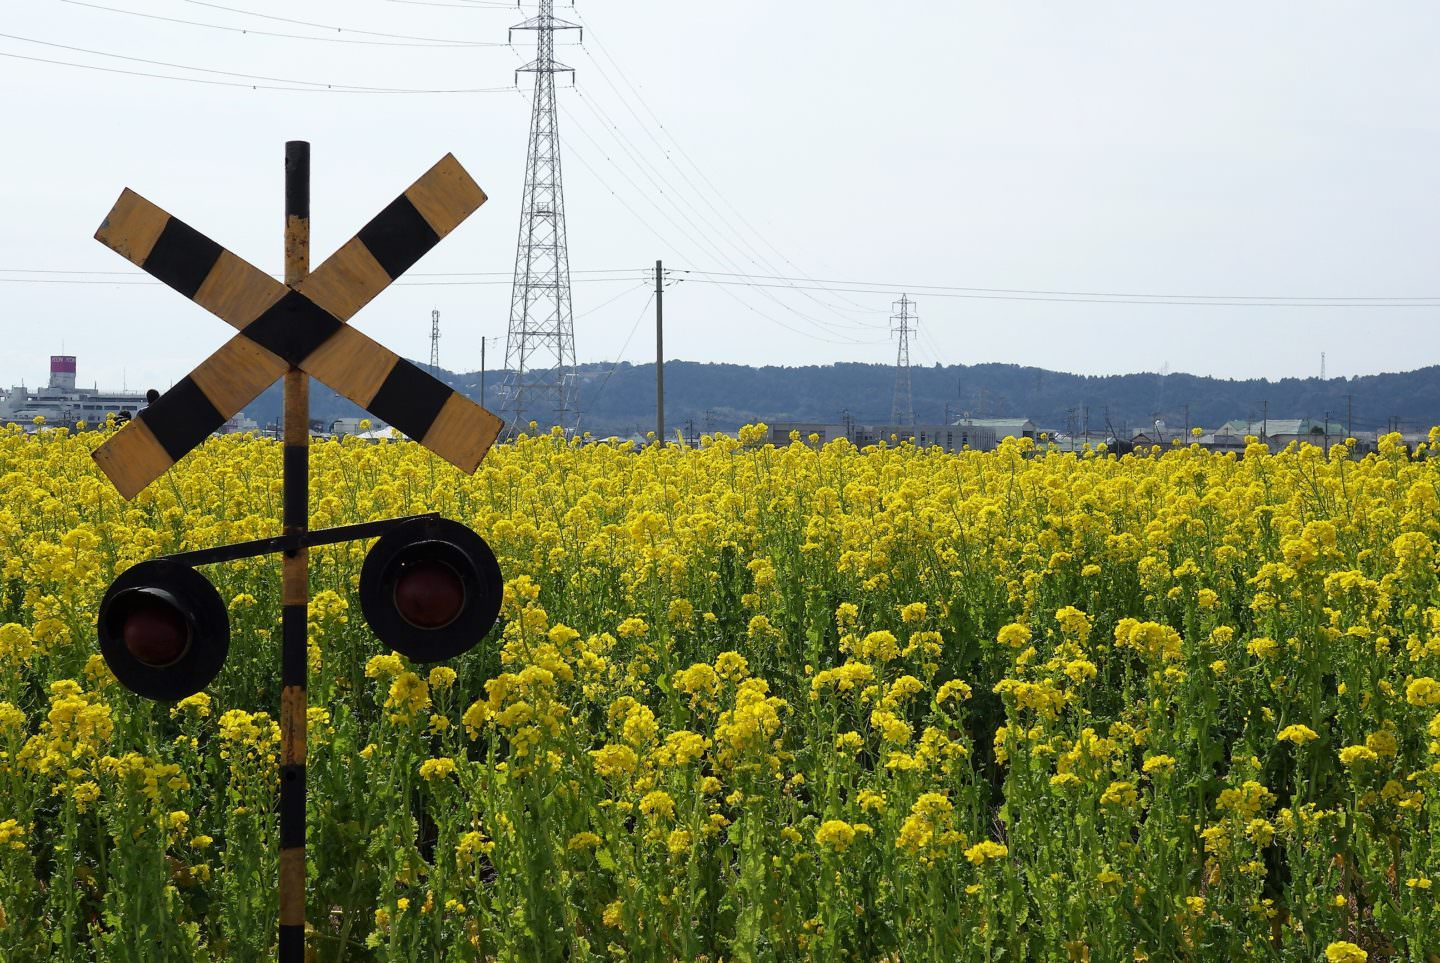 Enjoy handpicking canola flowers and get a taste of spring at Nanabatake Road in Kamogawa, Chiba Prefecture!